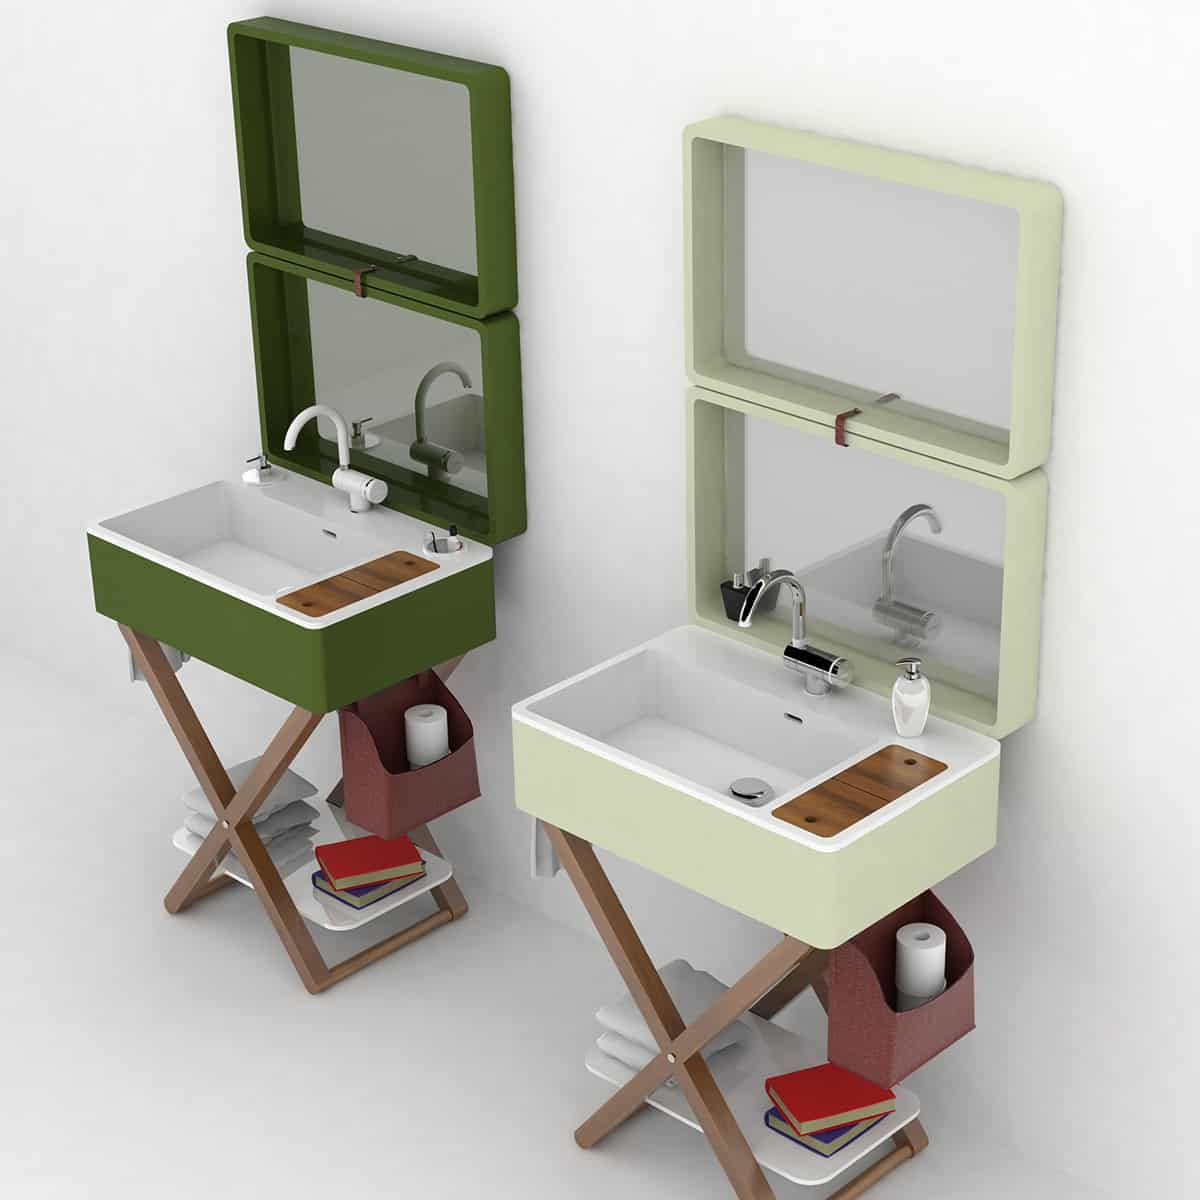 Bathroom in a Suitcase: My Bag by Olympia